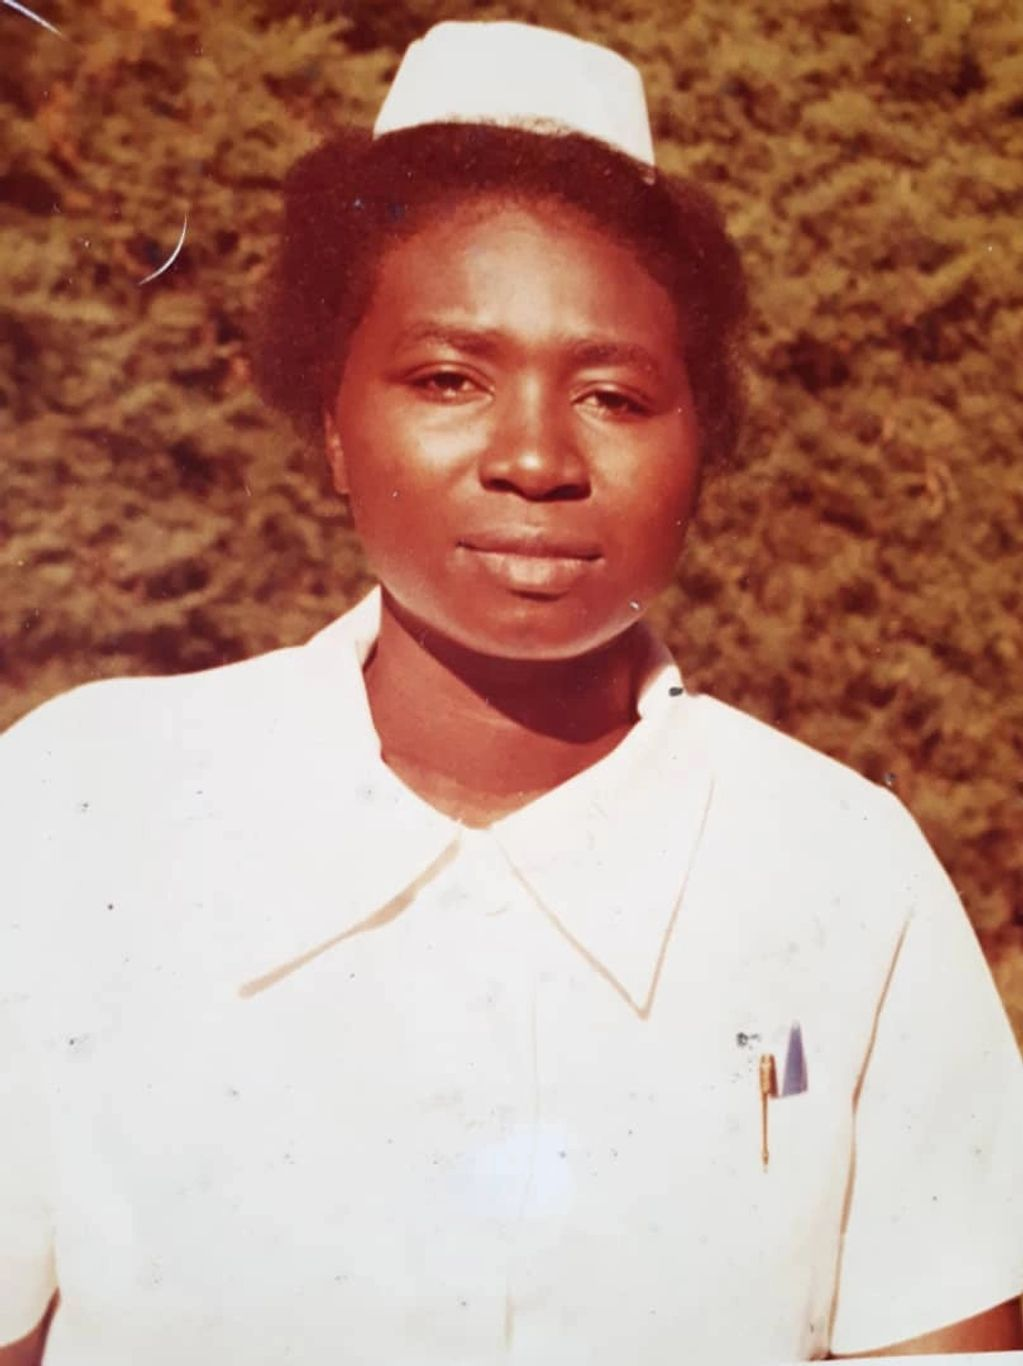 A ugandan nurse in 1980s